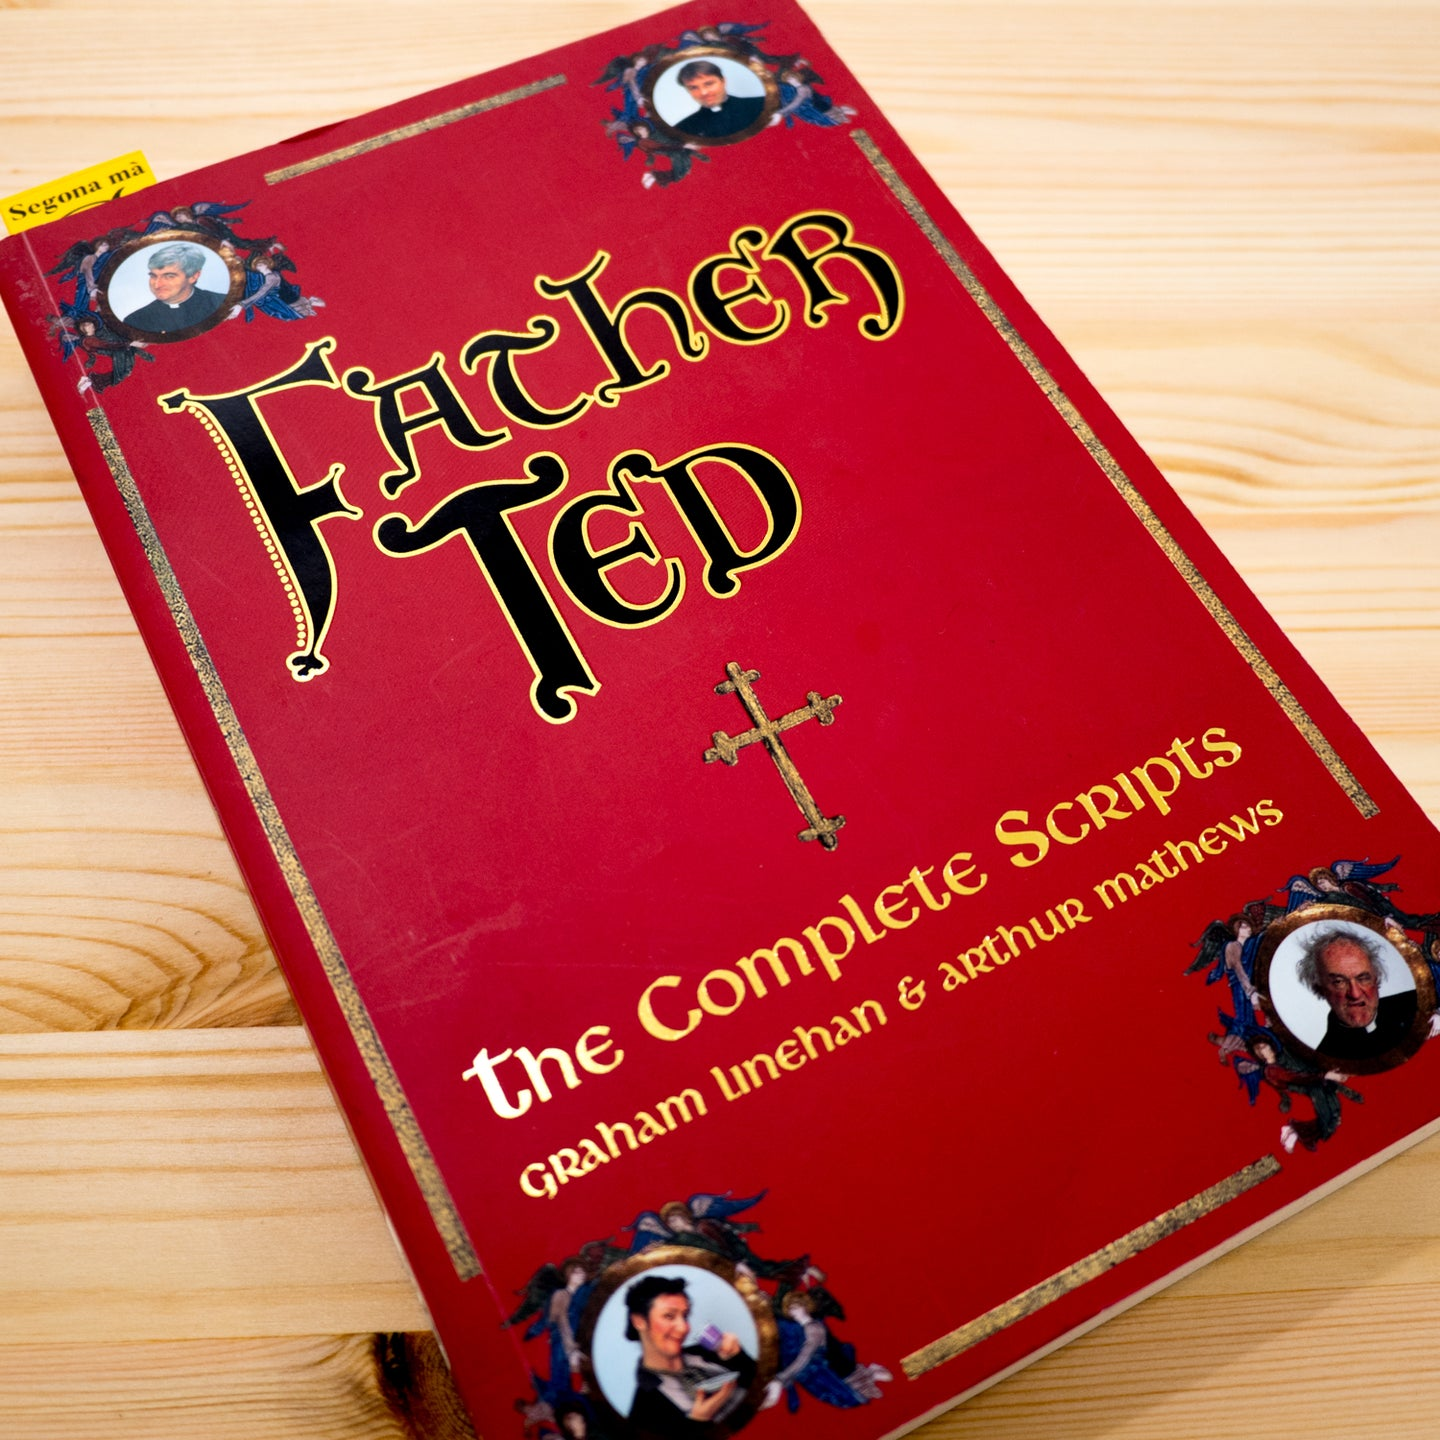 GRAHAM LINEHAN | Father Ted: The complete scripts*